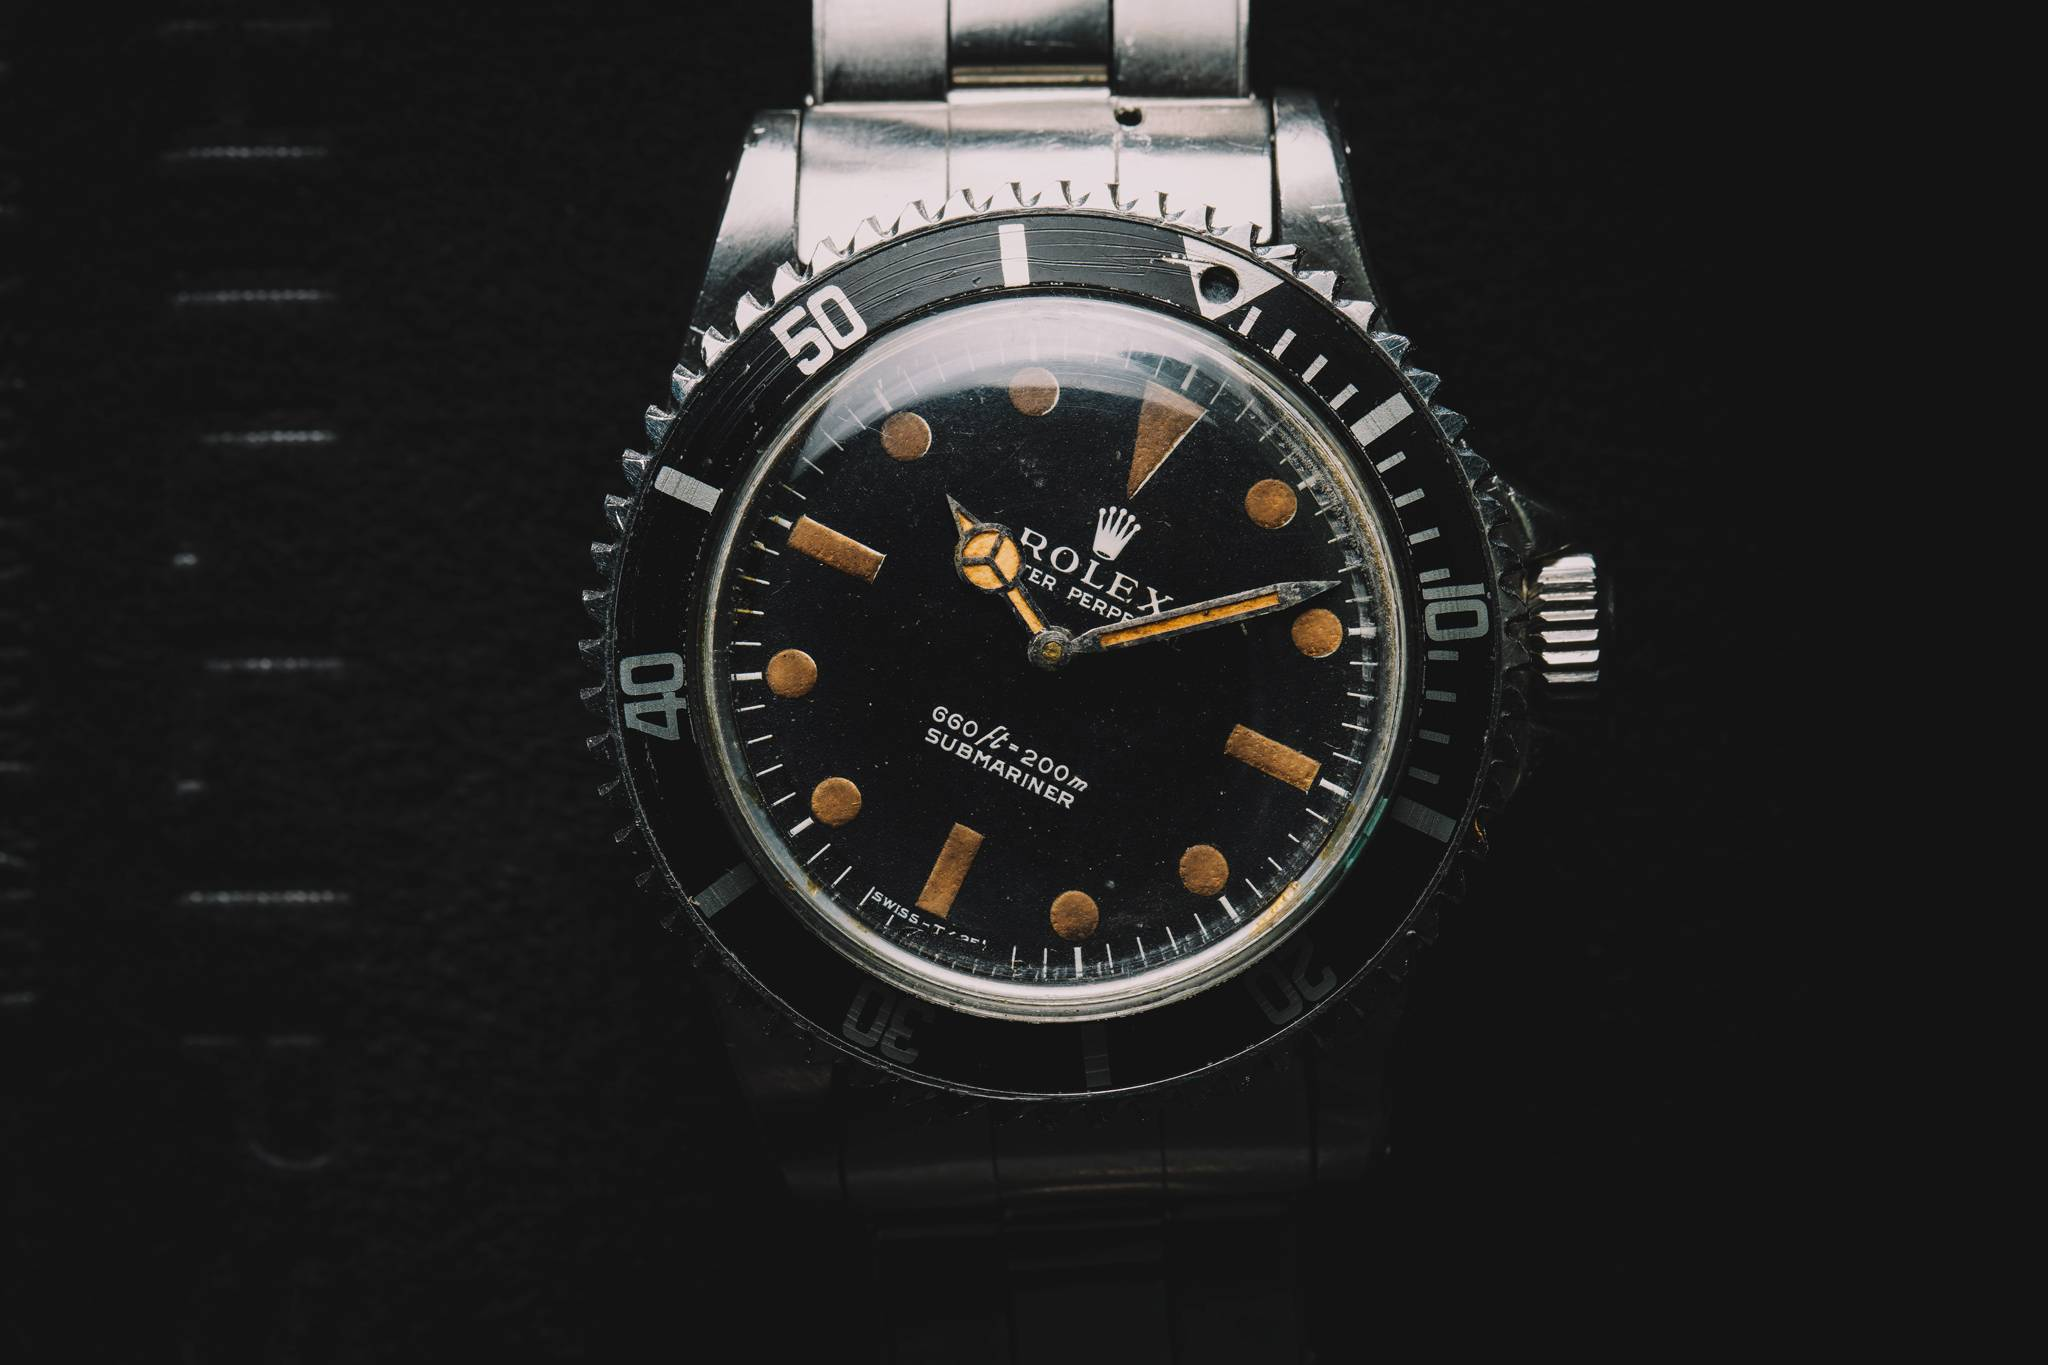 Rolex 'James Bond' Submariner from 'Live and Let Die', Reference 5513, Stainless Steel, 1972